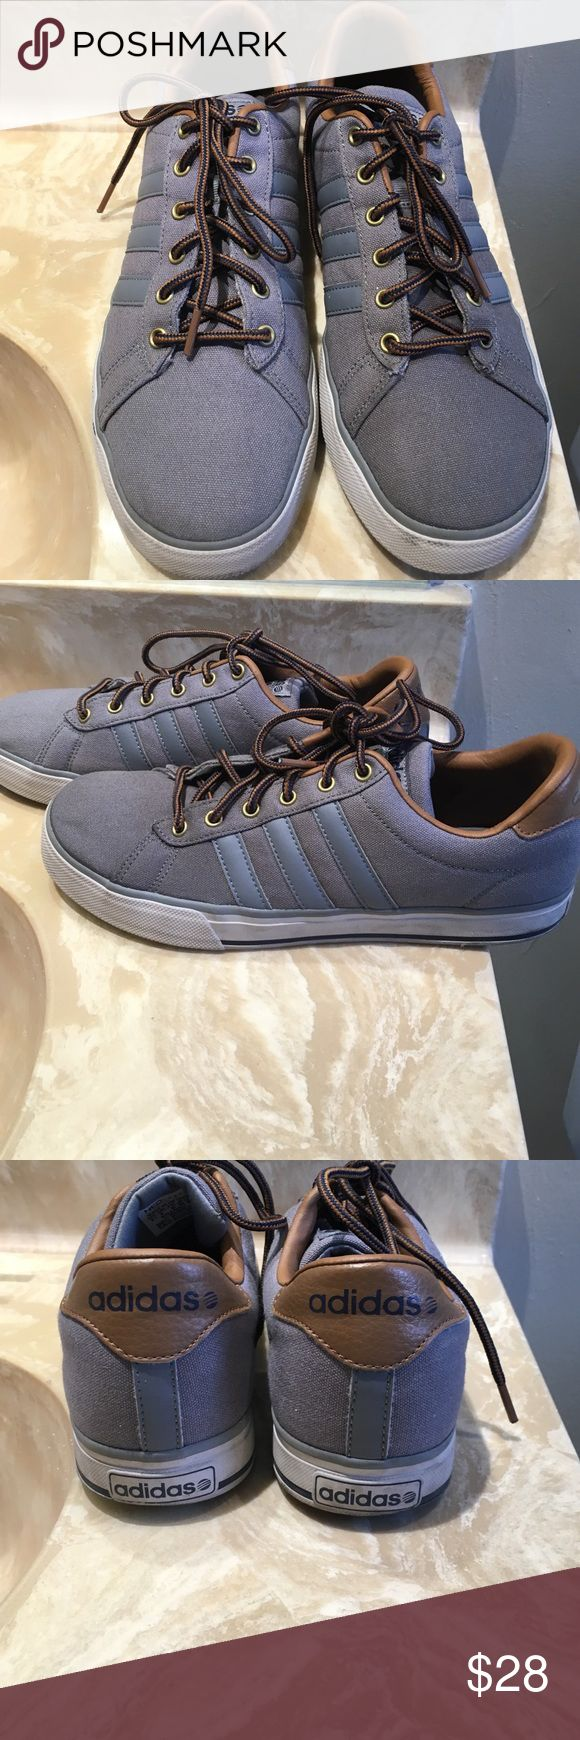 Adidas Ortholite Neo Worn once, perfect condition, grey with brown Adidas Shoes Sneakers